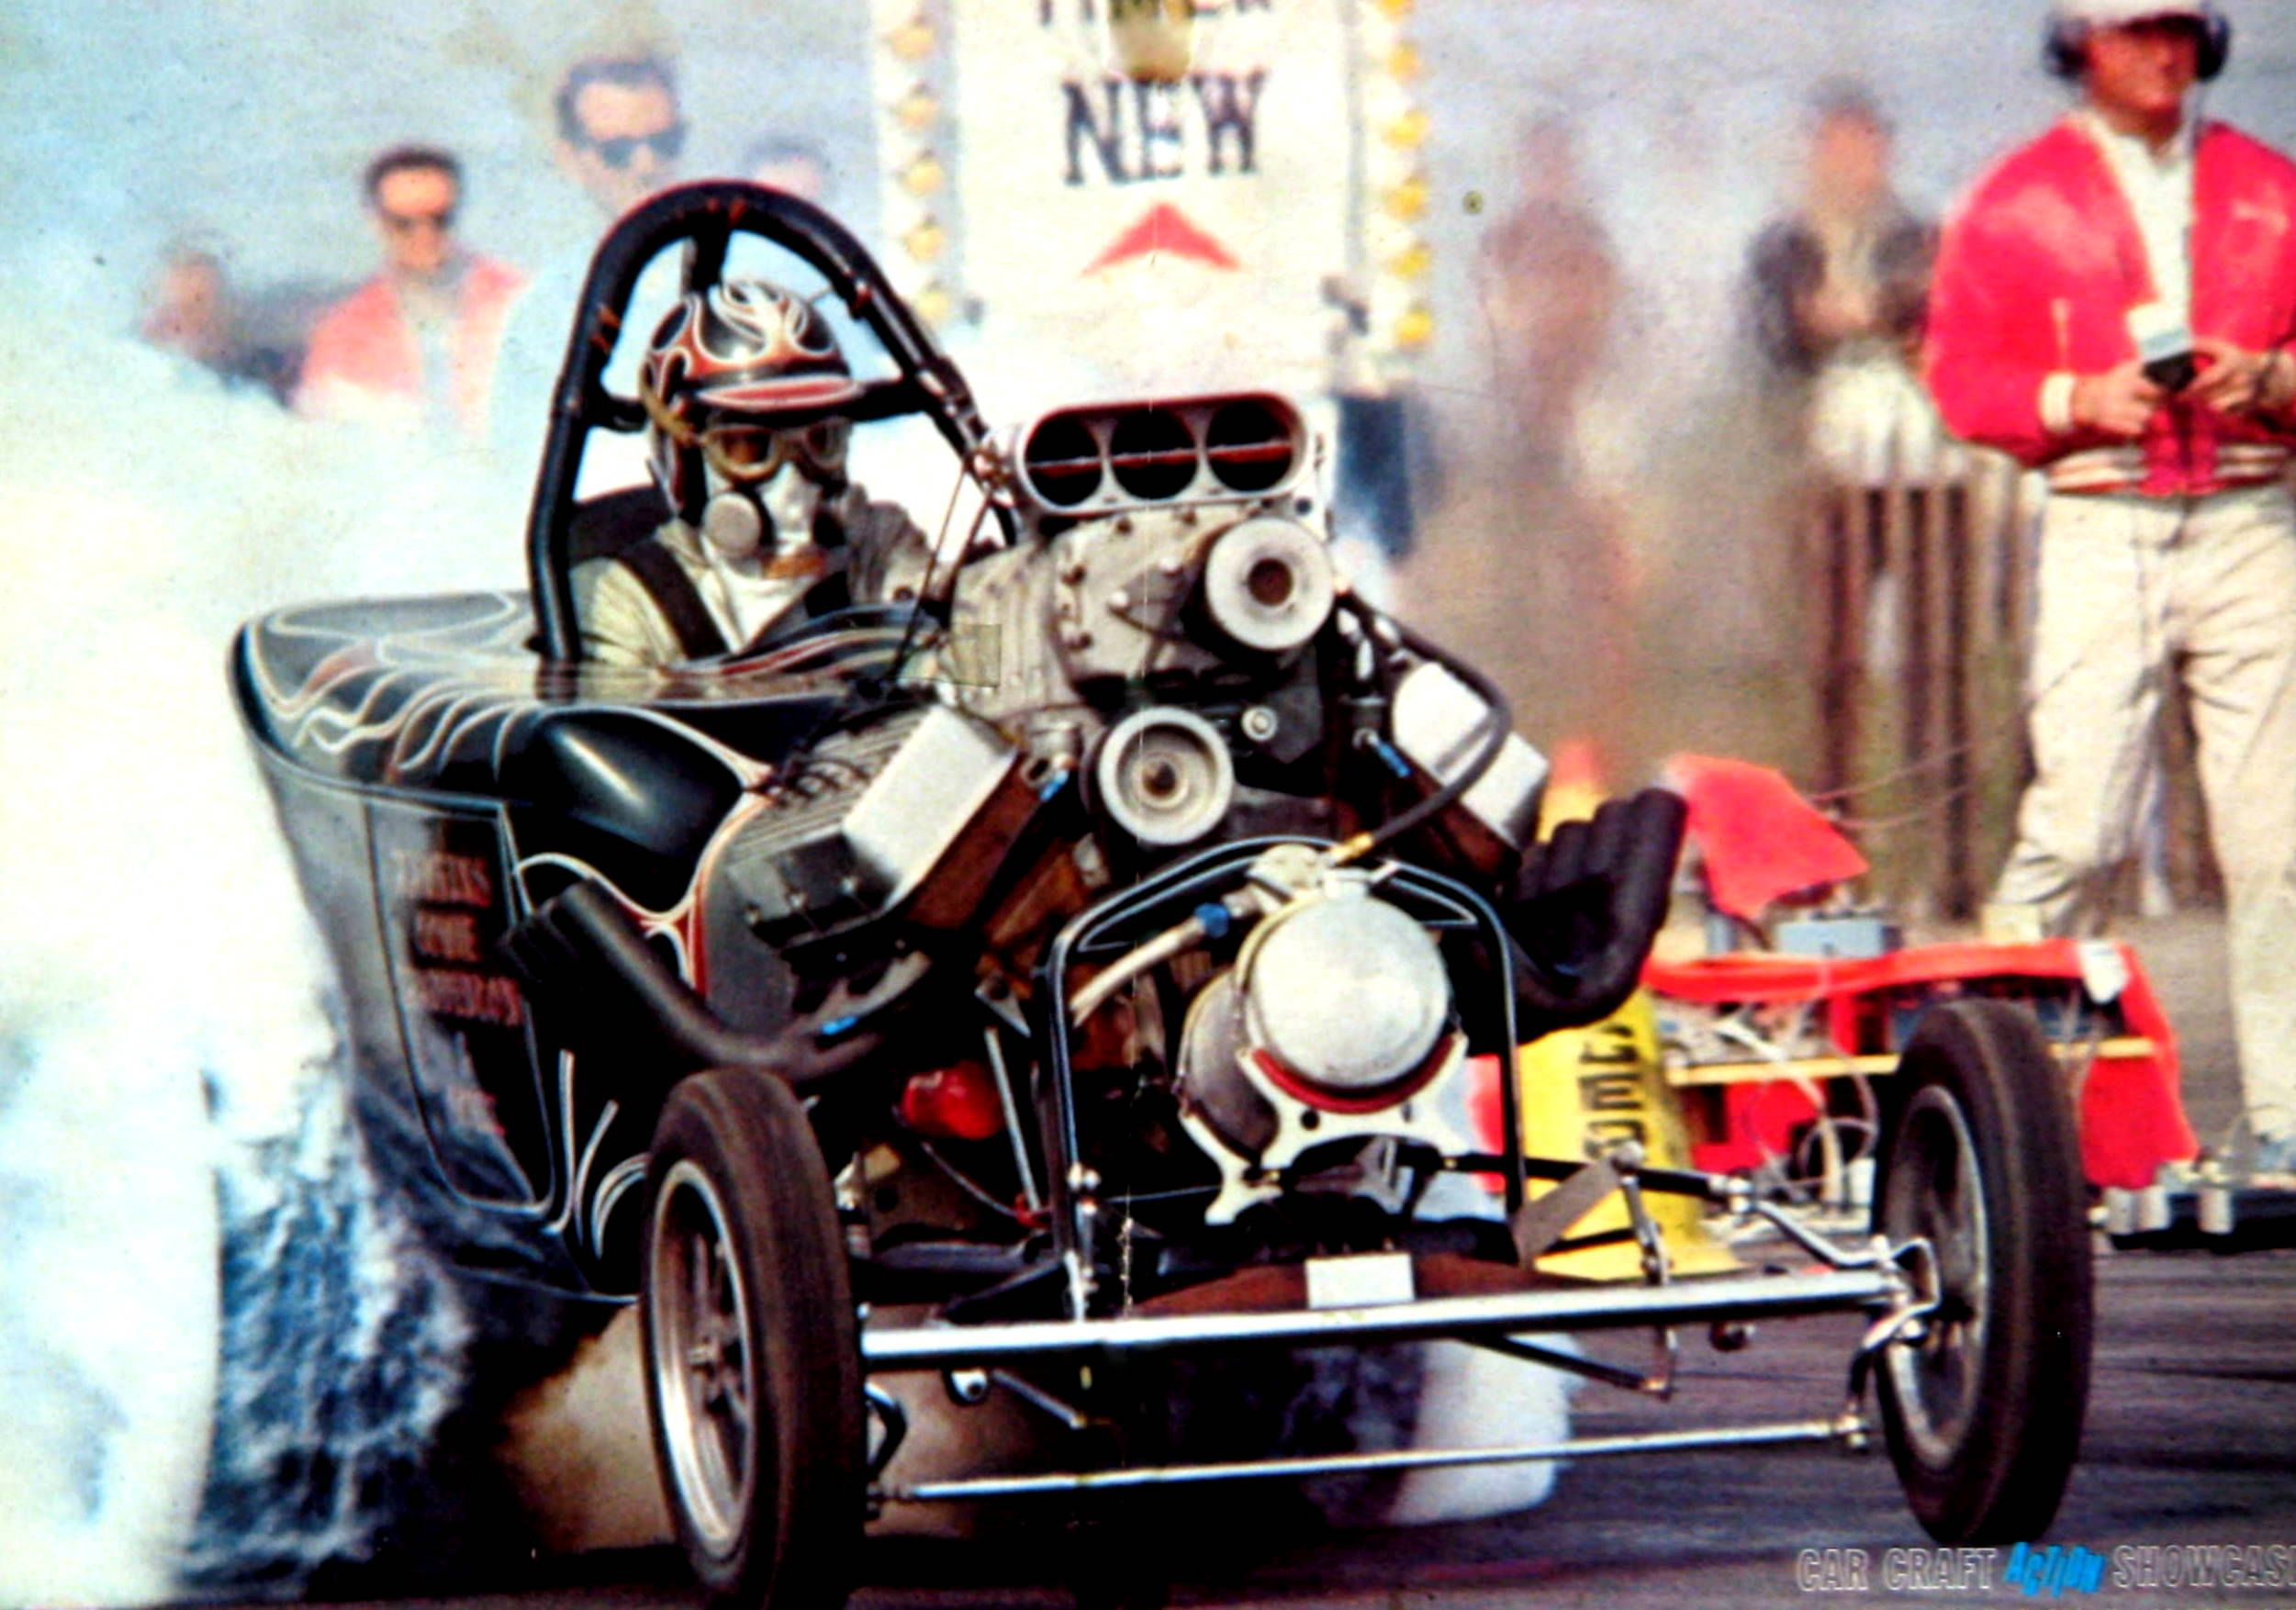 Old School - From the pages of Car Craft Hot Rod Magazines | Hot ...